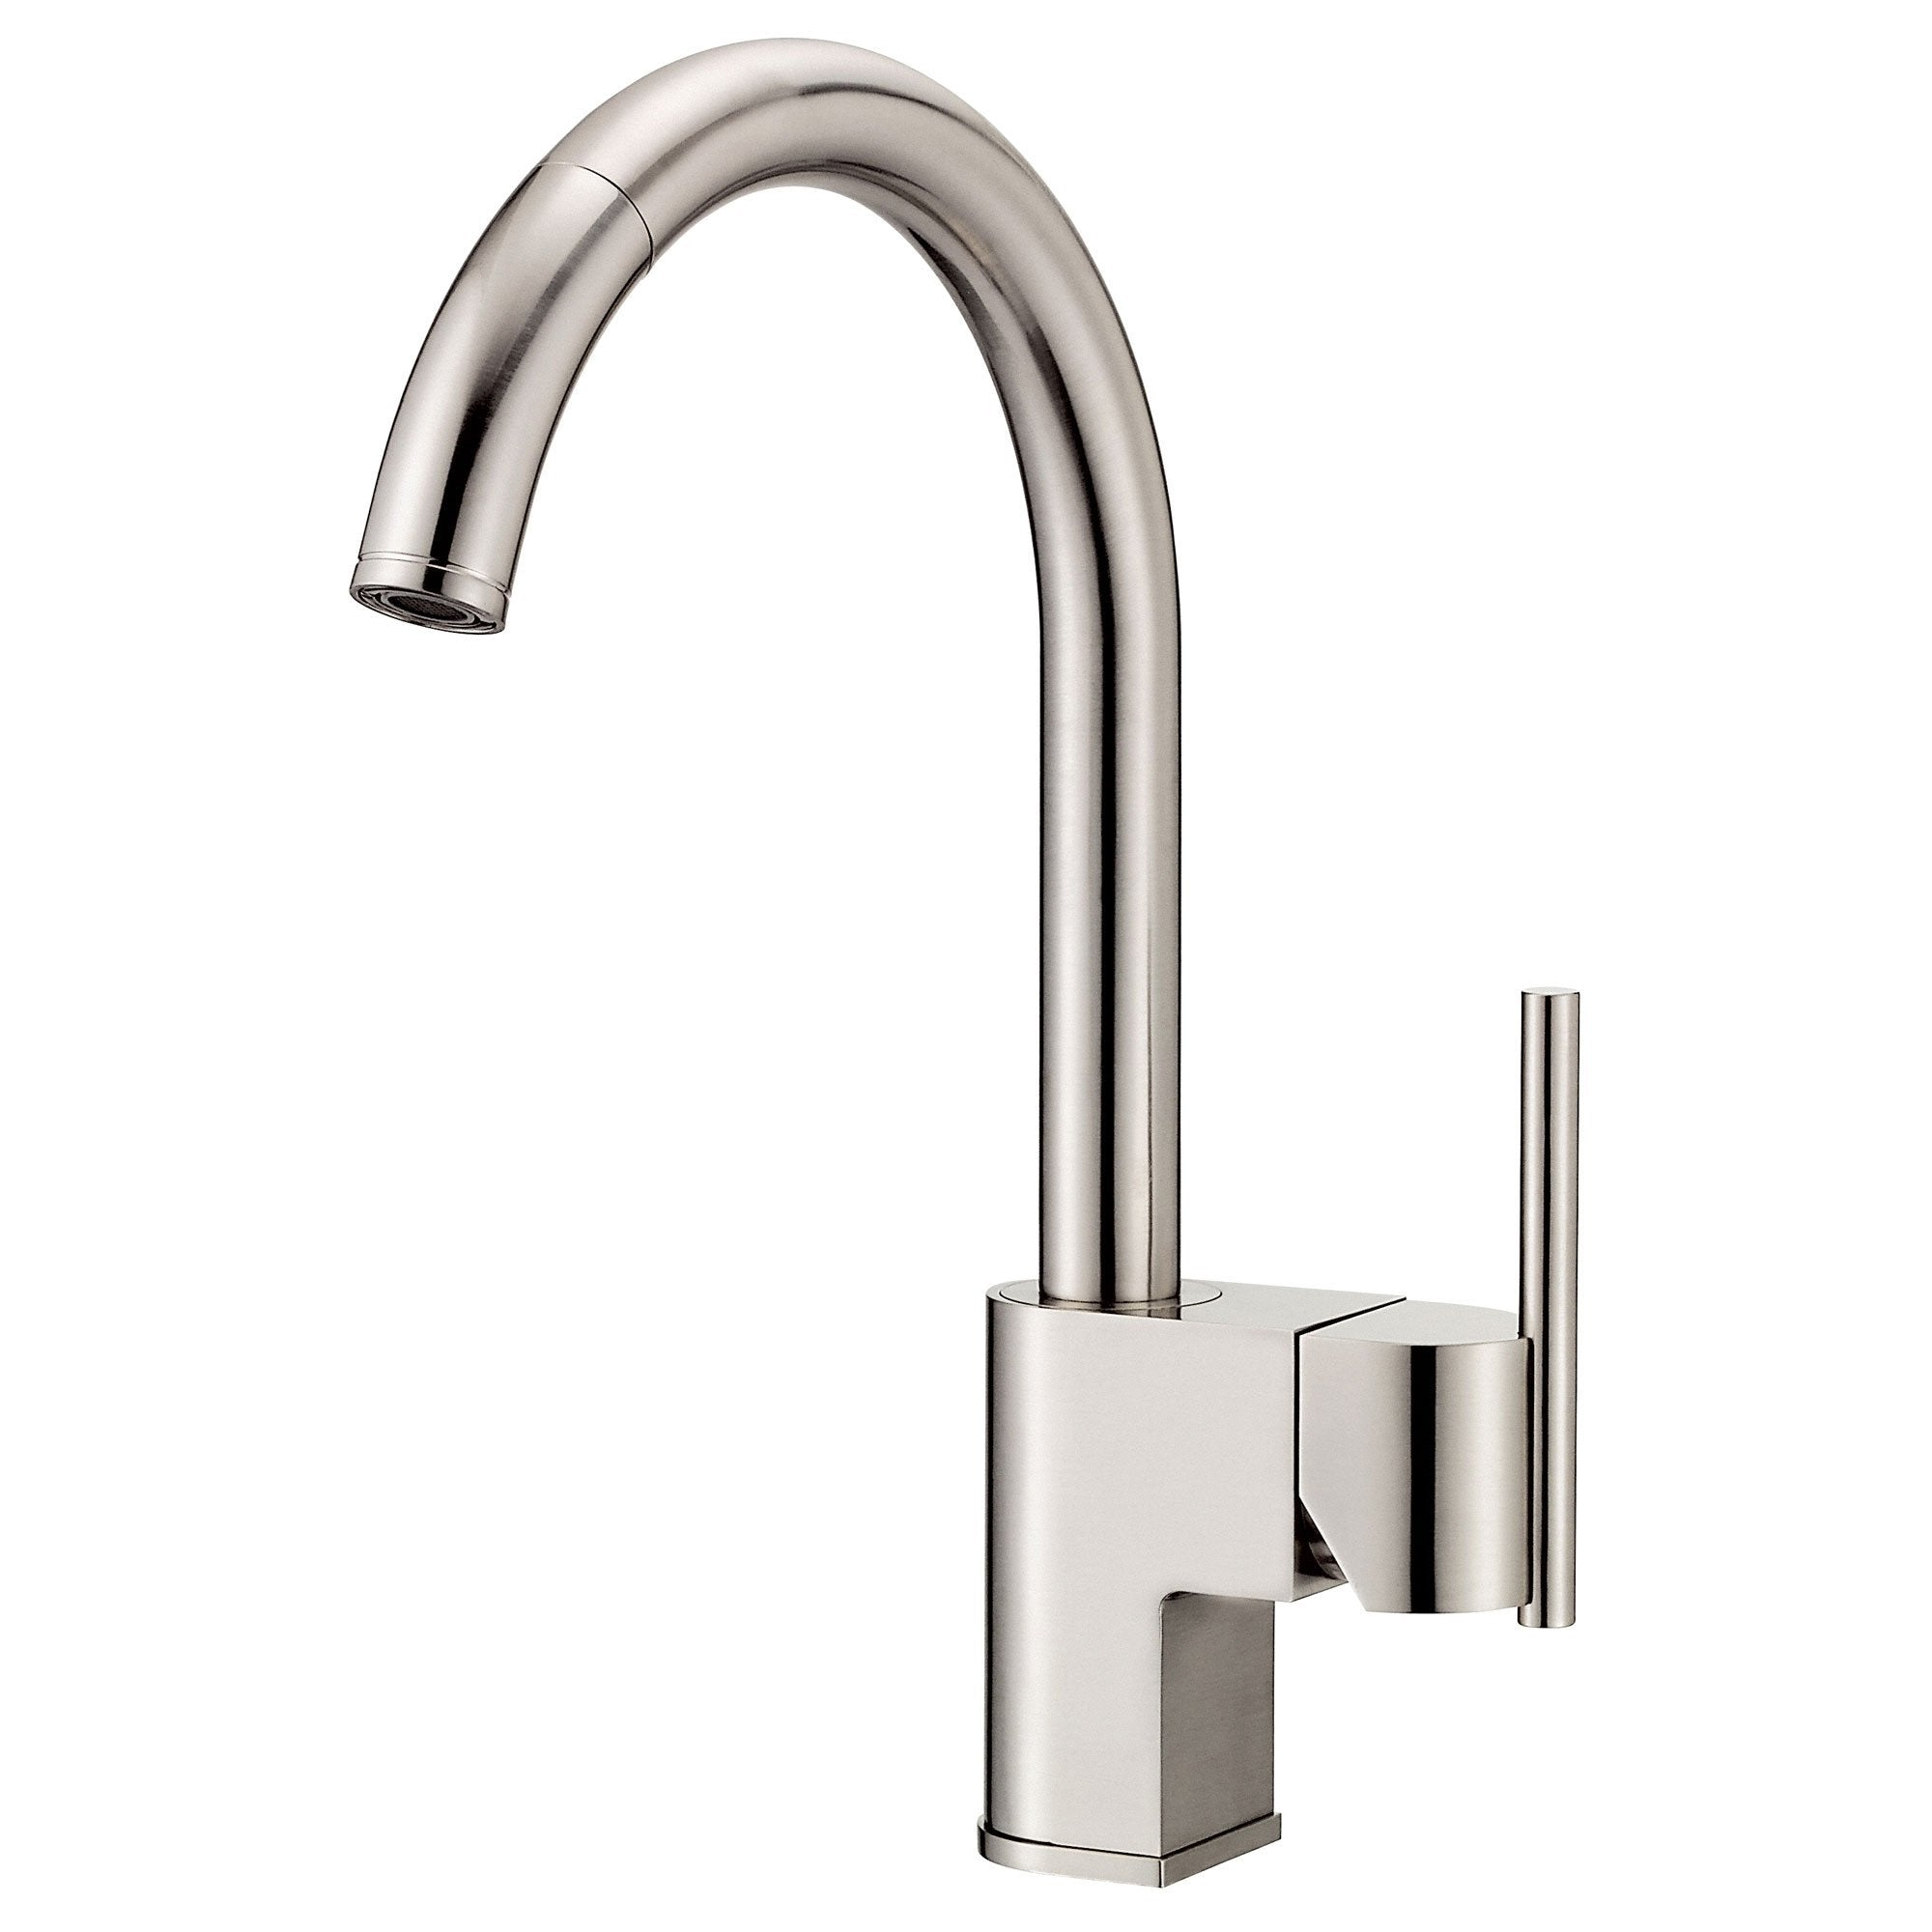 Danze Como Stainless Steel Modern Single Handle Pull-Down Spout Kitchen Faucet